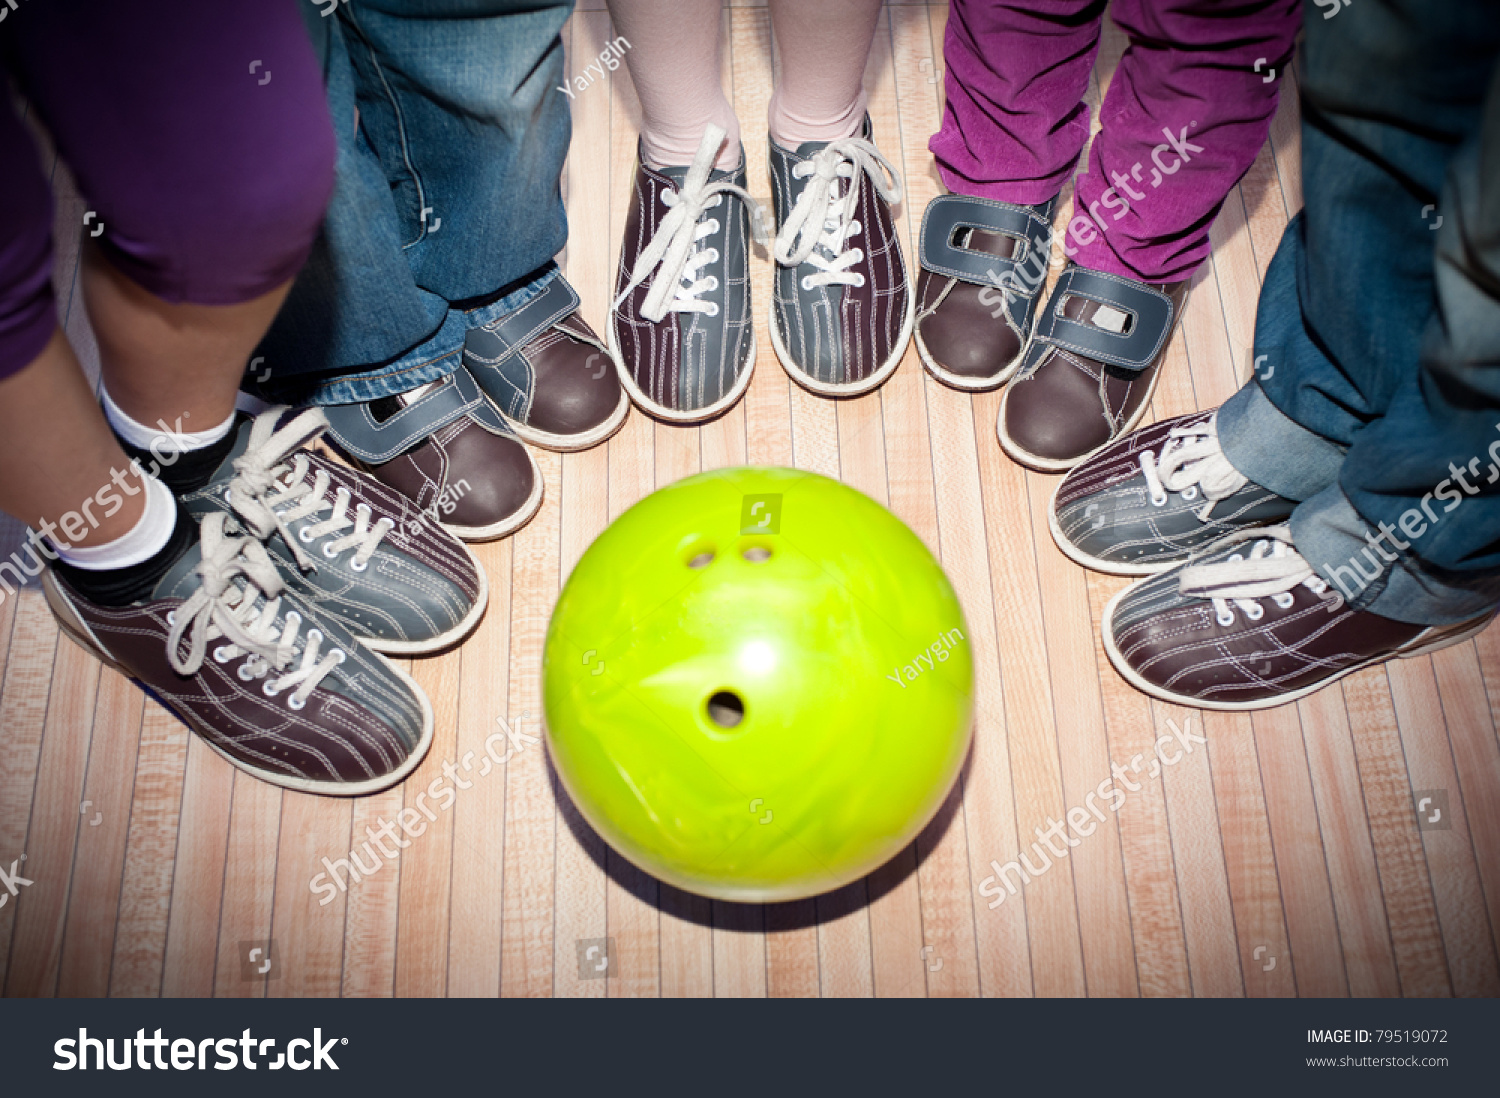 Childrens Feet Shoes Bowling Ball Game Stock Photo 79519072 ...